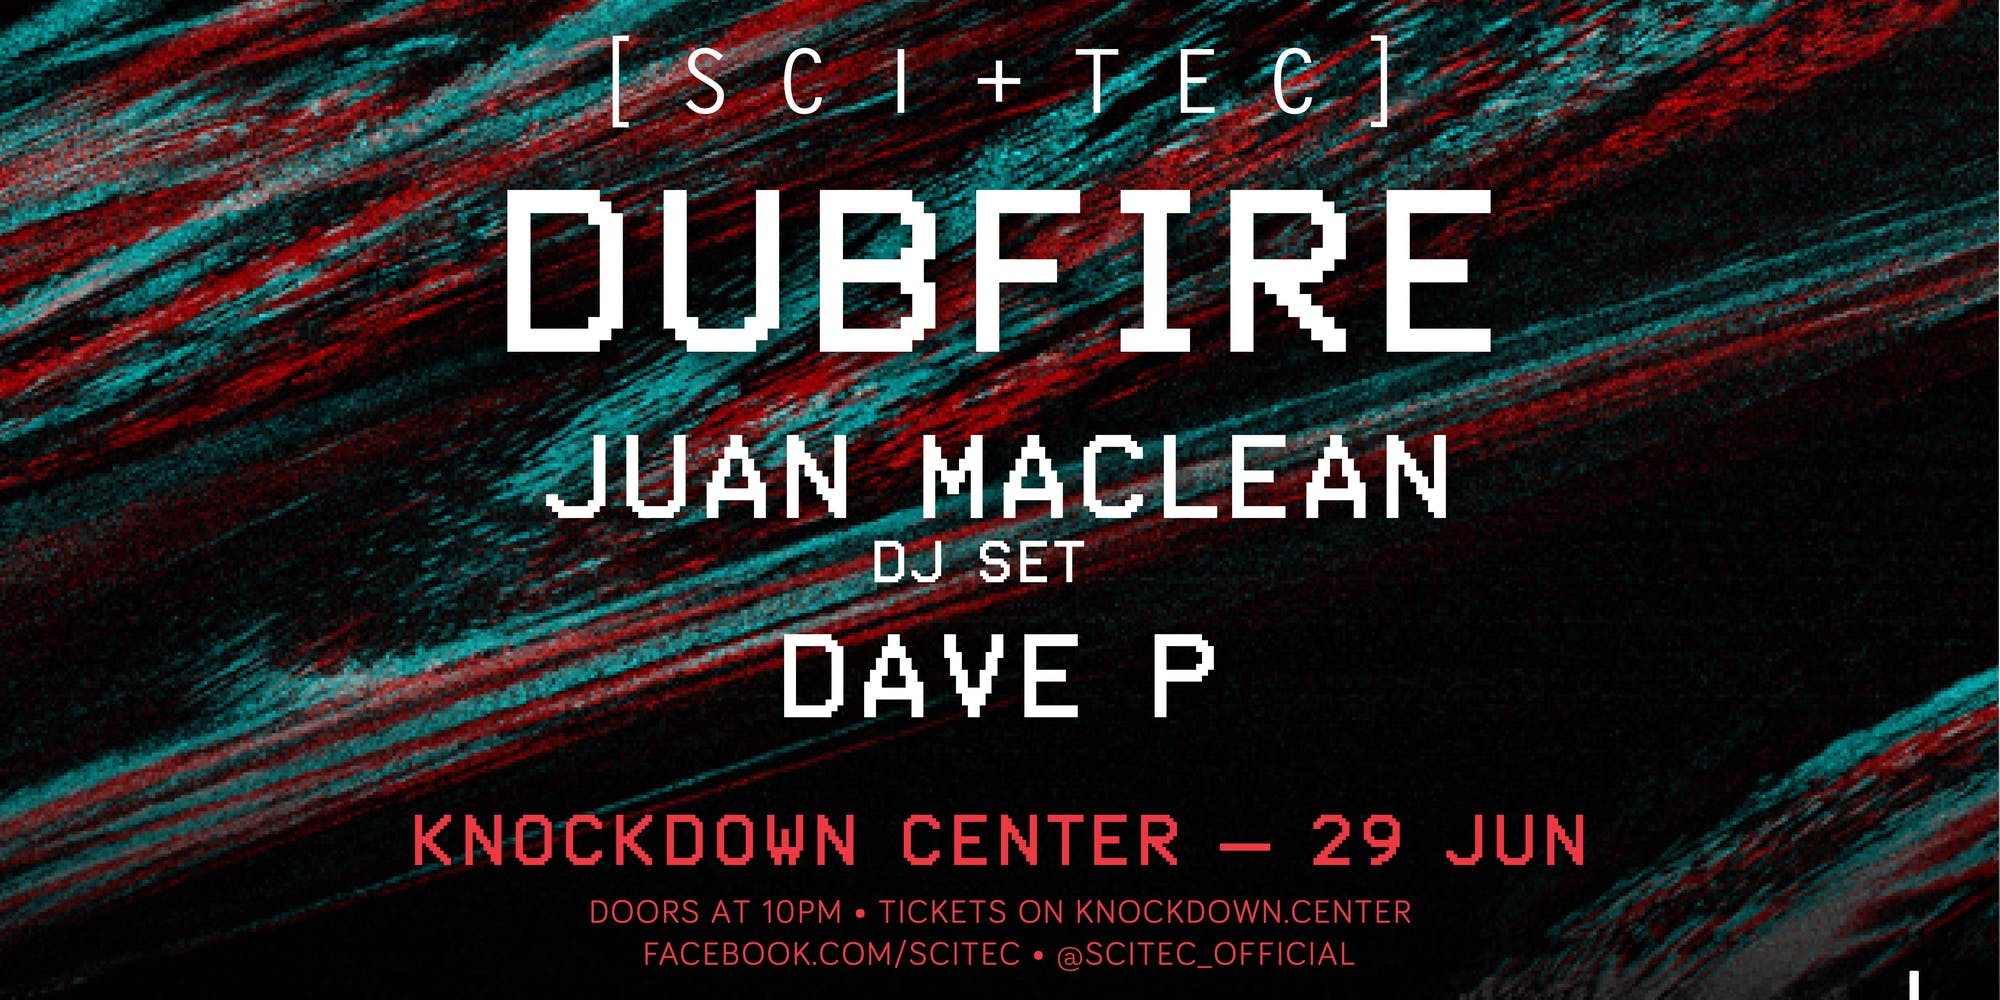 Knockdown Center dubfire  robbie lumpkin promotions